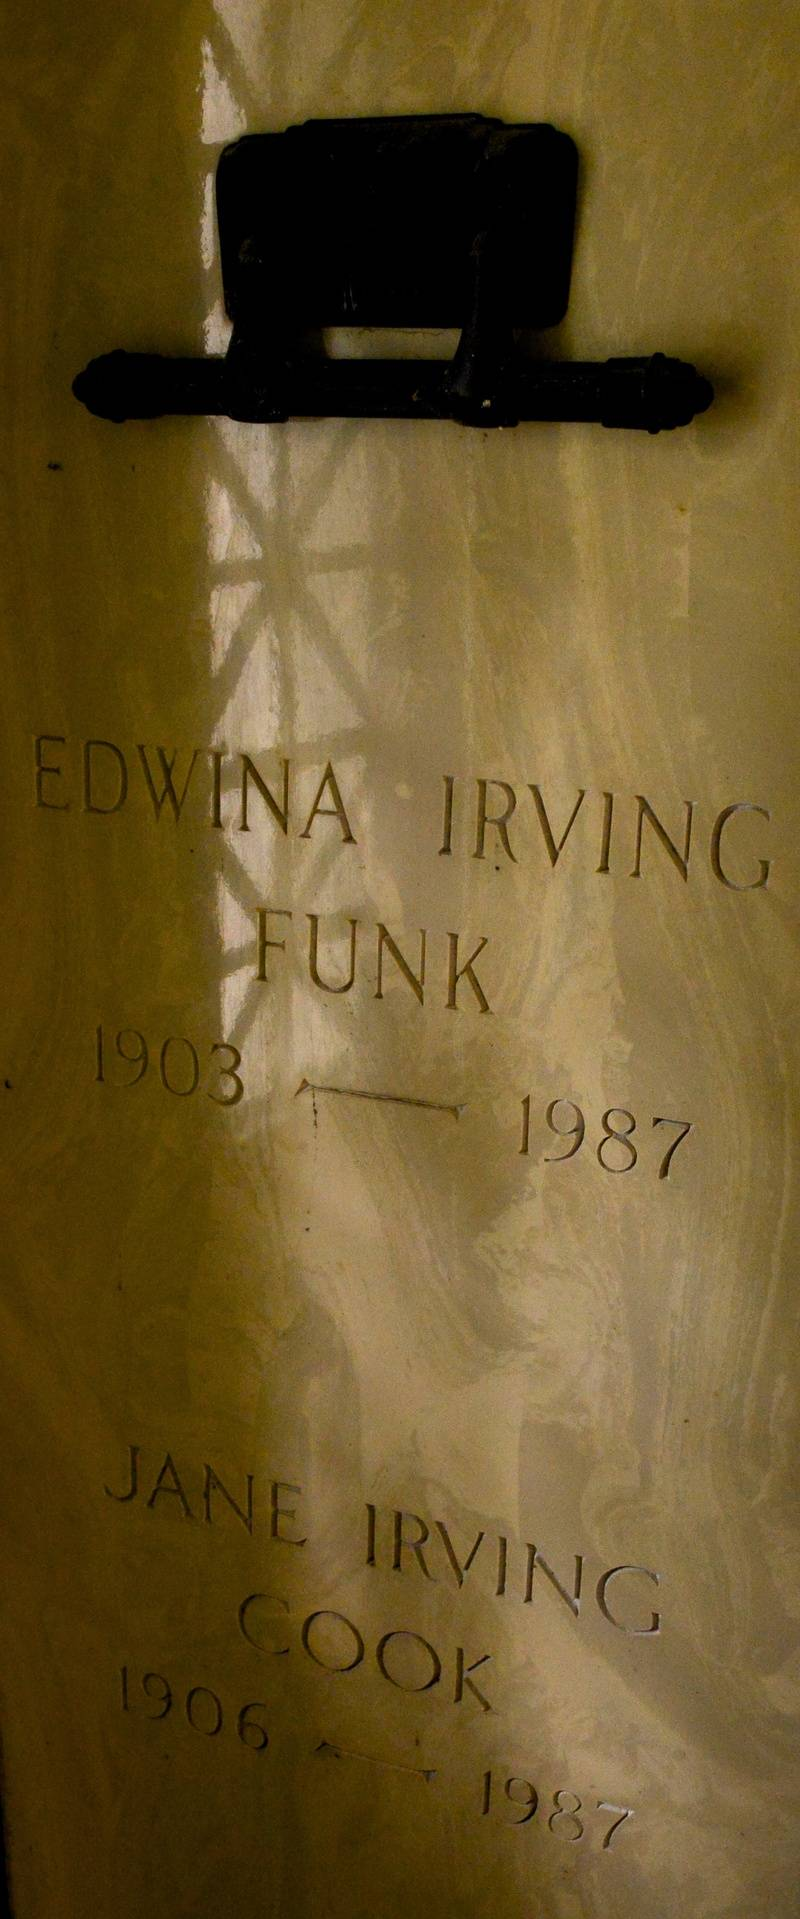 Edwina Irving Funk and Jane Irving Cook - Daughters